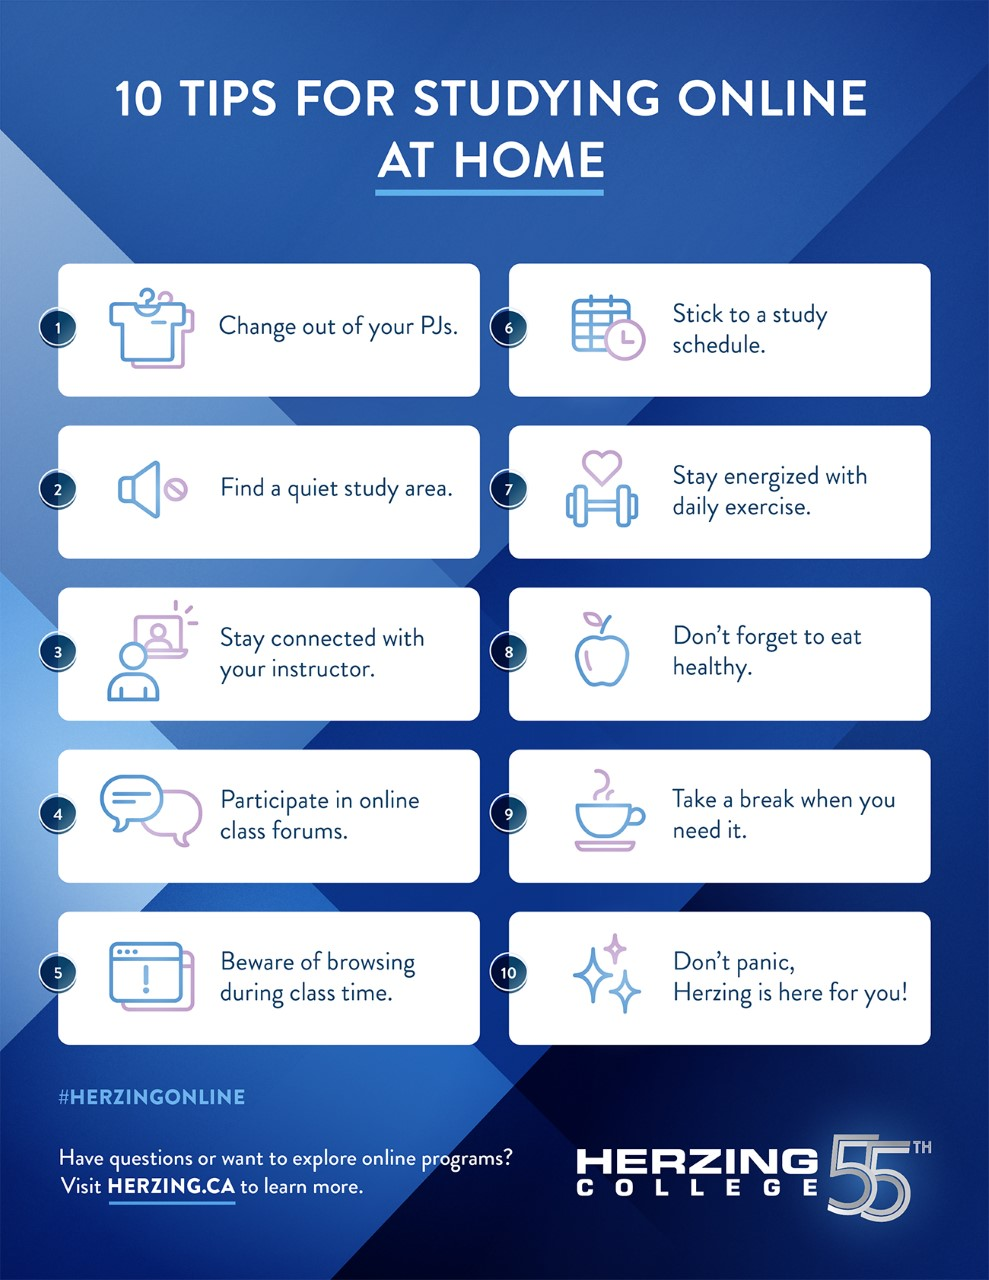 10 Tips for Studying Online at Home